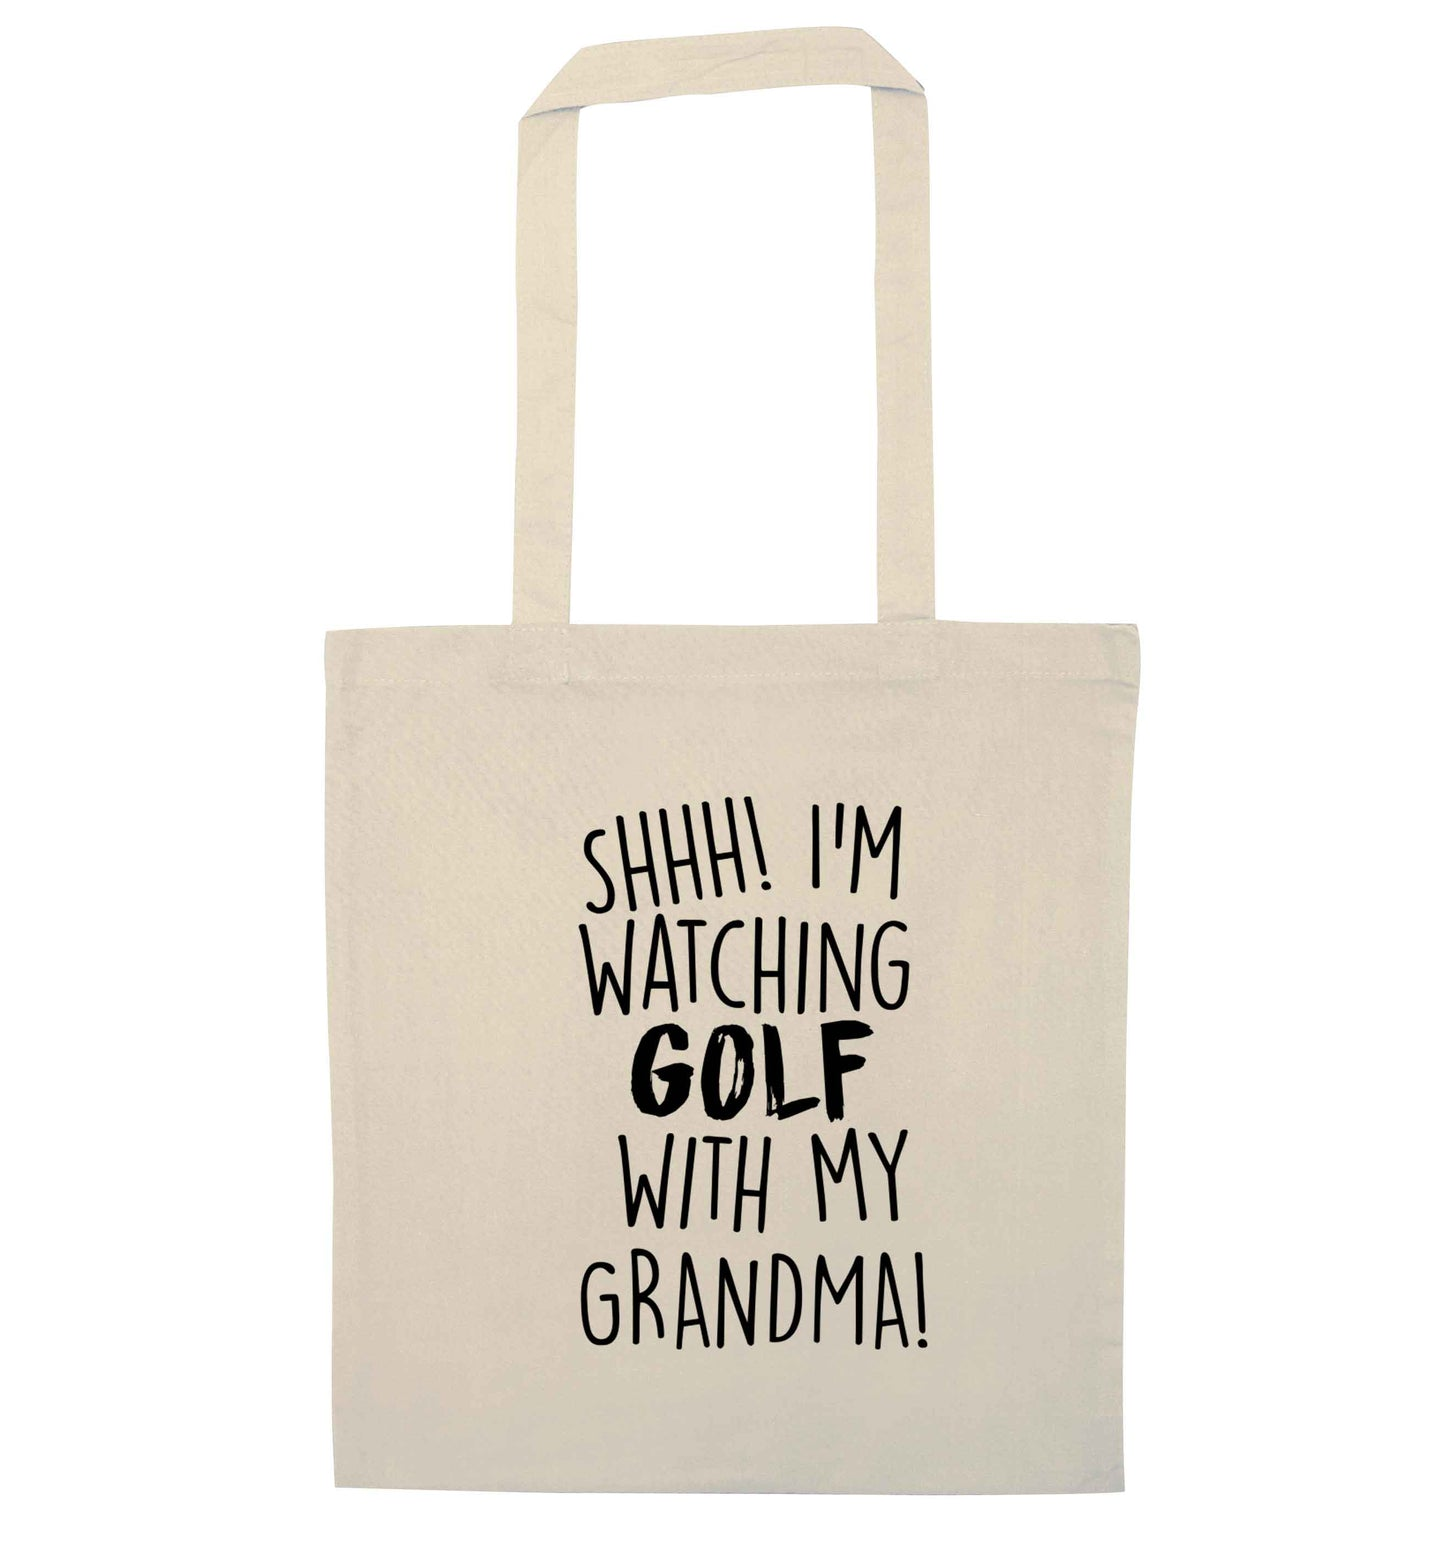 Shh I'm watching golf with my grandma natural tote bag